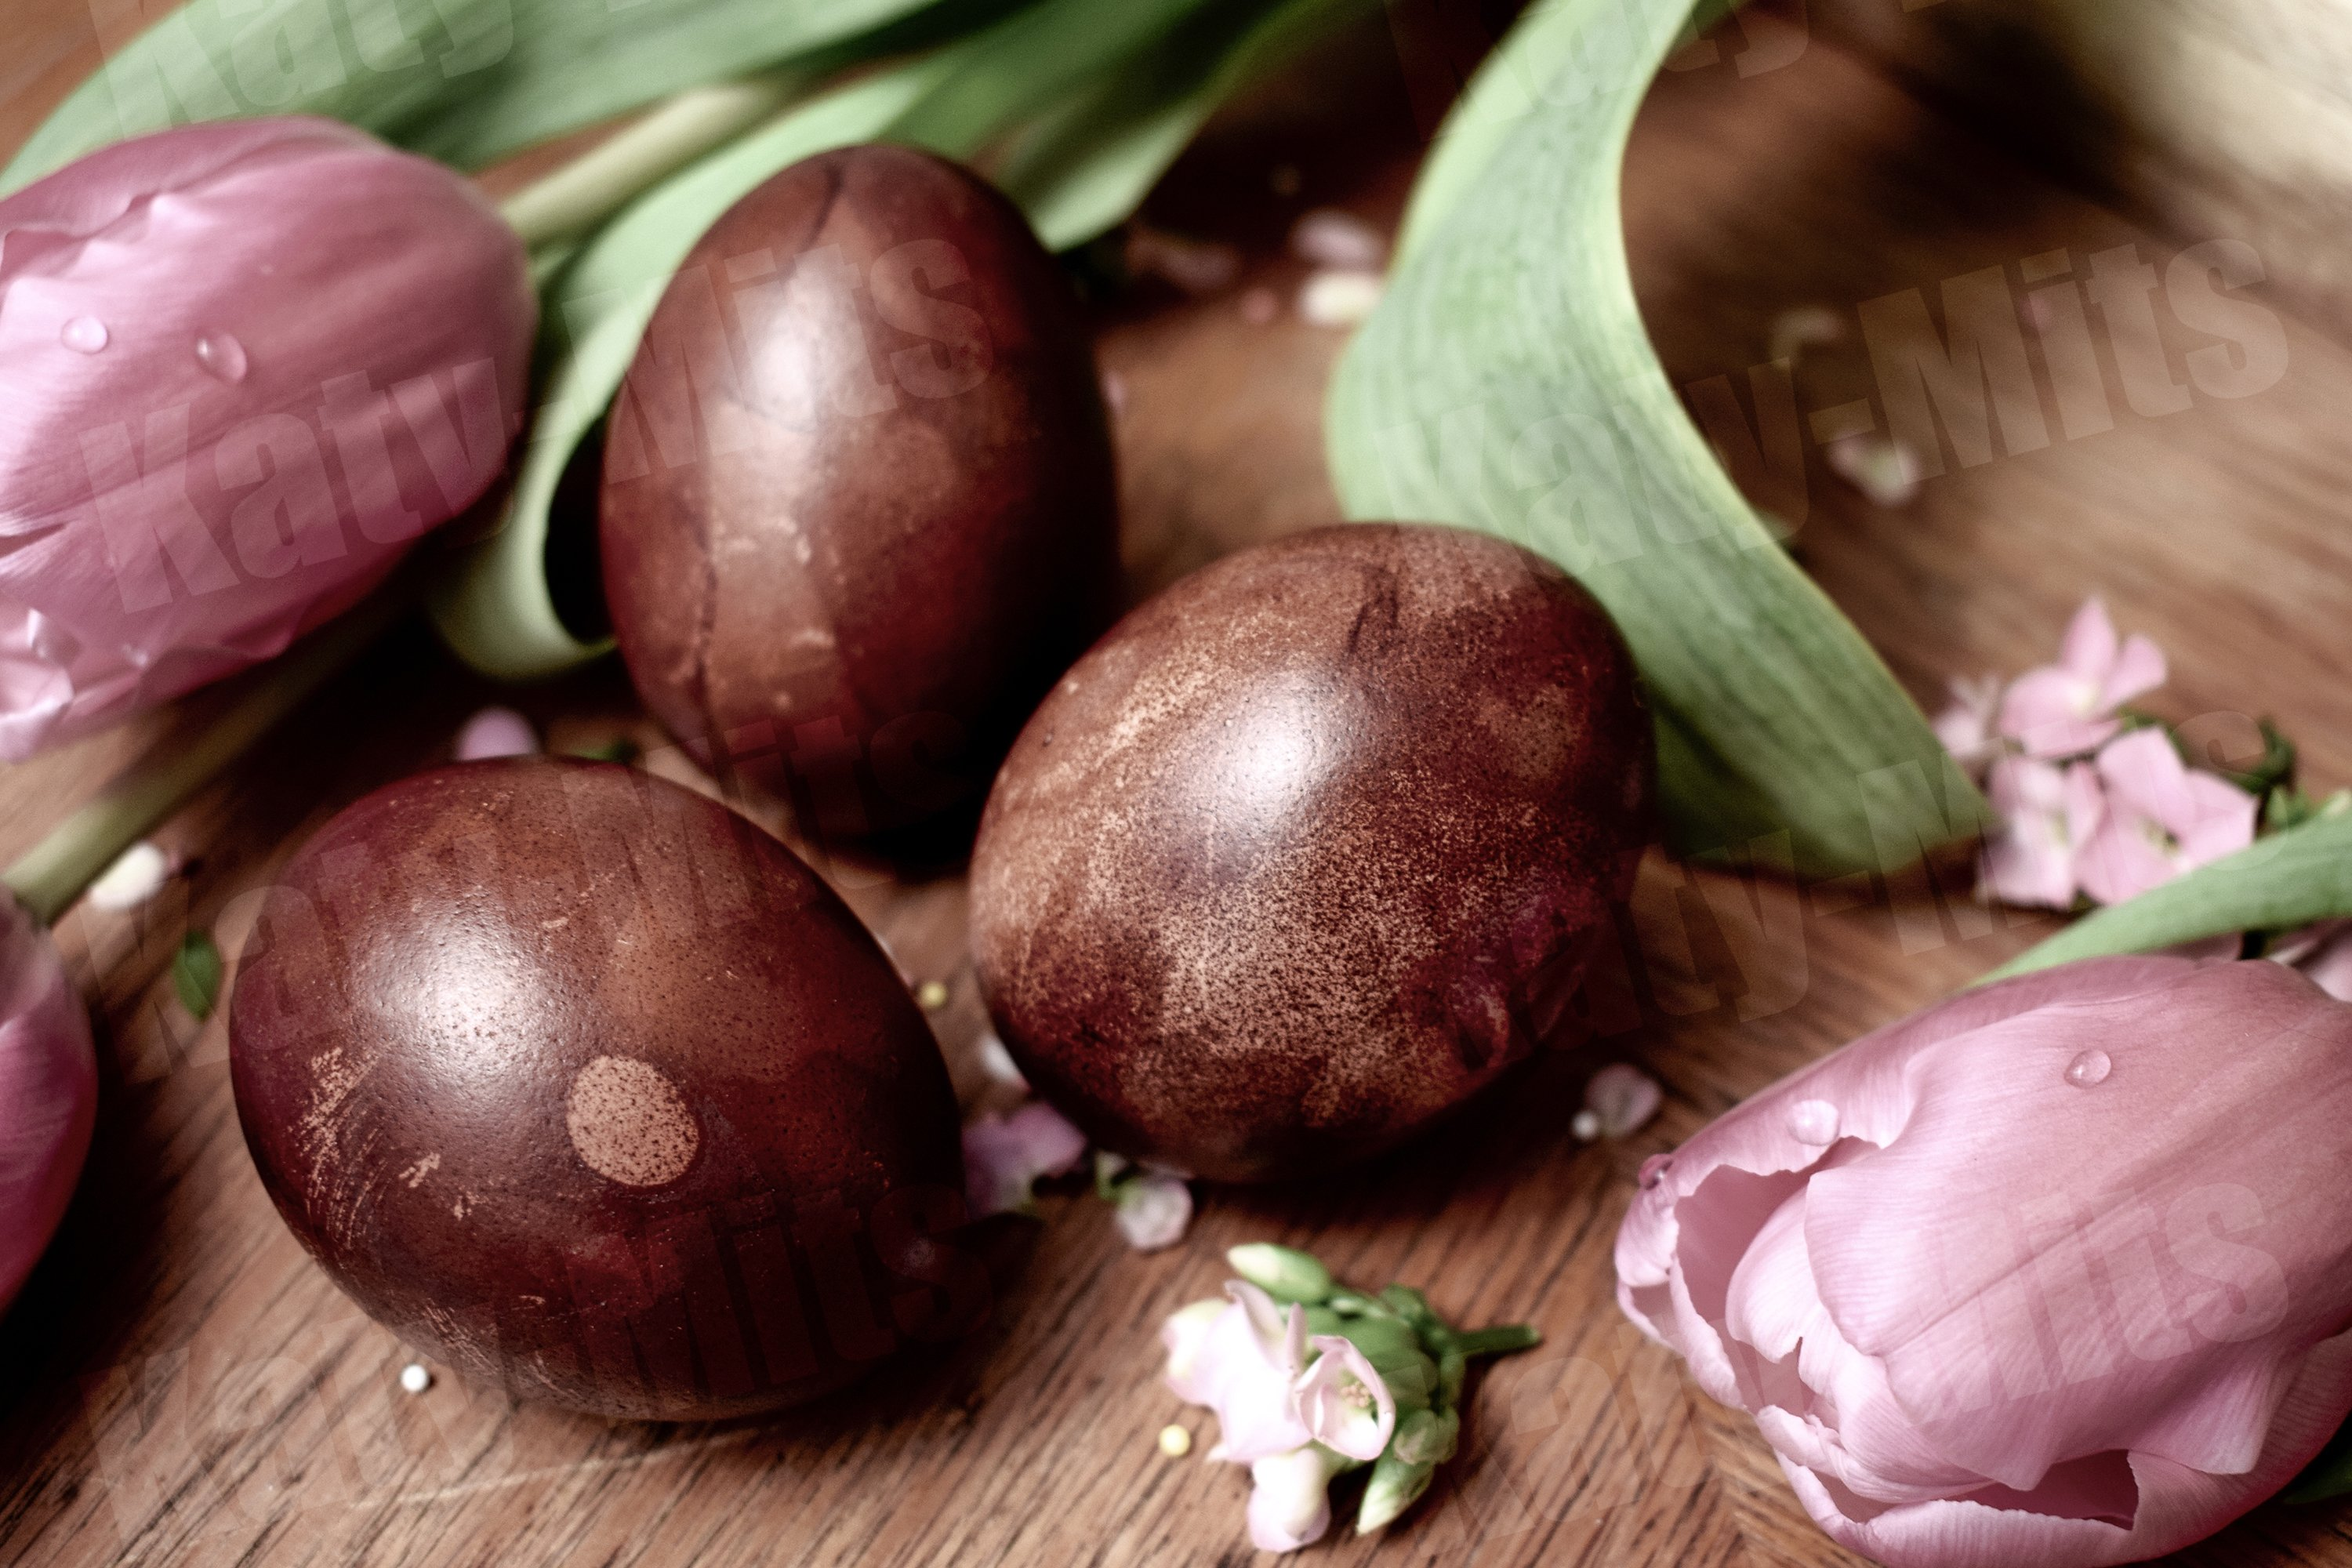 3 Easter eggs on a wooden table in retro style example image 1